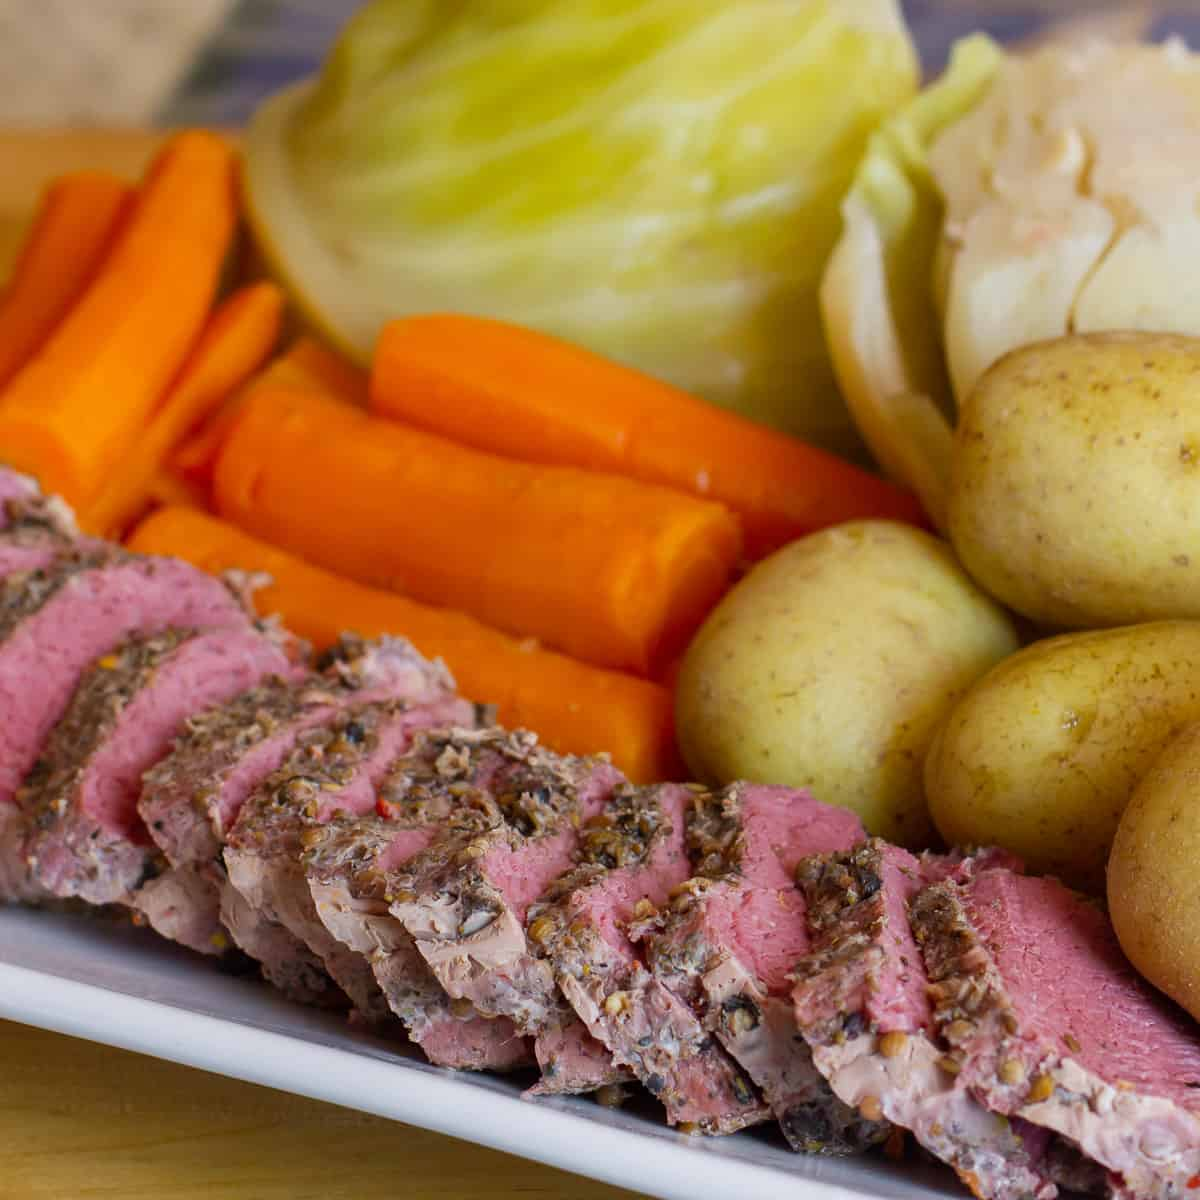 A plate of Irish boiled dinner